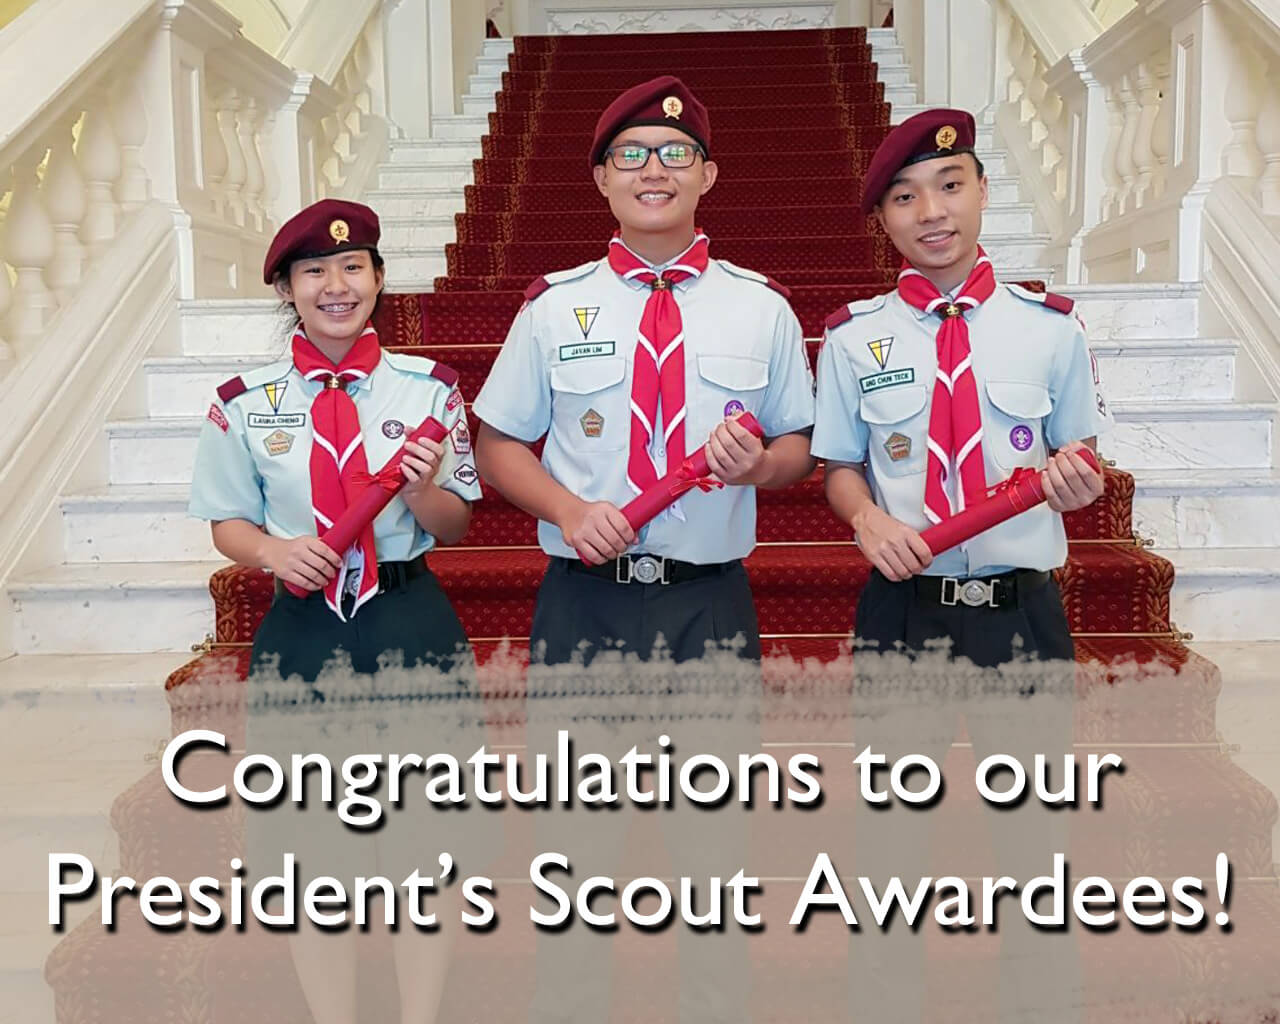 /wp-content/uploads/2019/04/2017_Presidents_Scout_Awardees_01_web.jpg